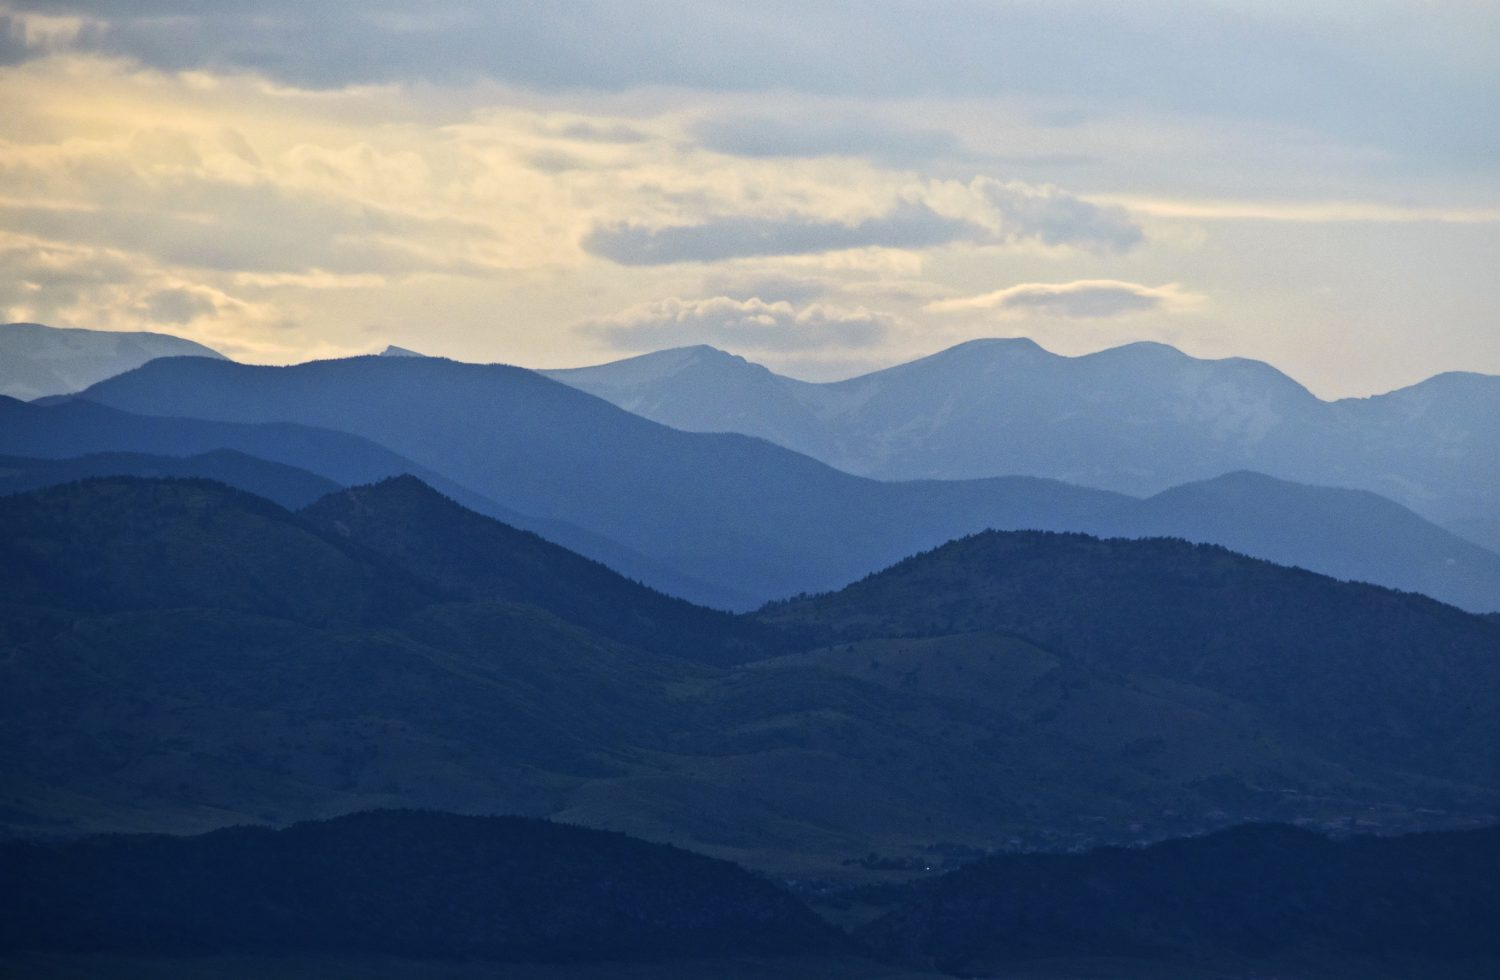 The ridges of the Rocky Mountains are layers of blue silhouettes when backlit by the evening sun